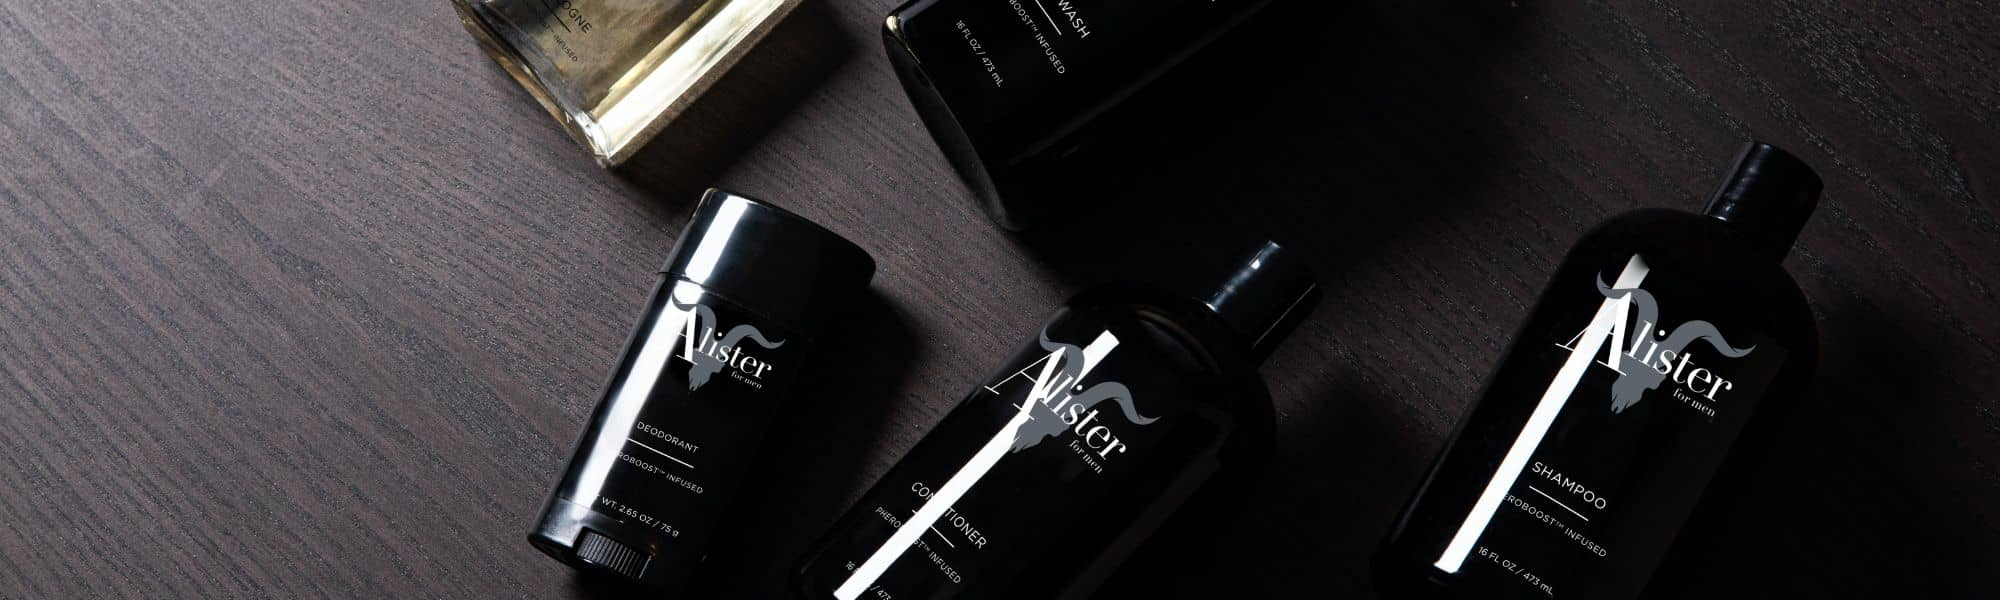 Men's Grooming Routine | Start Your Morning With Alister